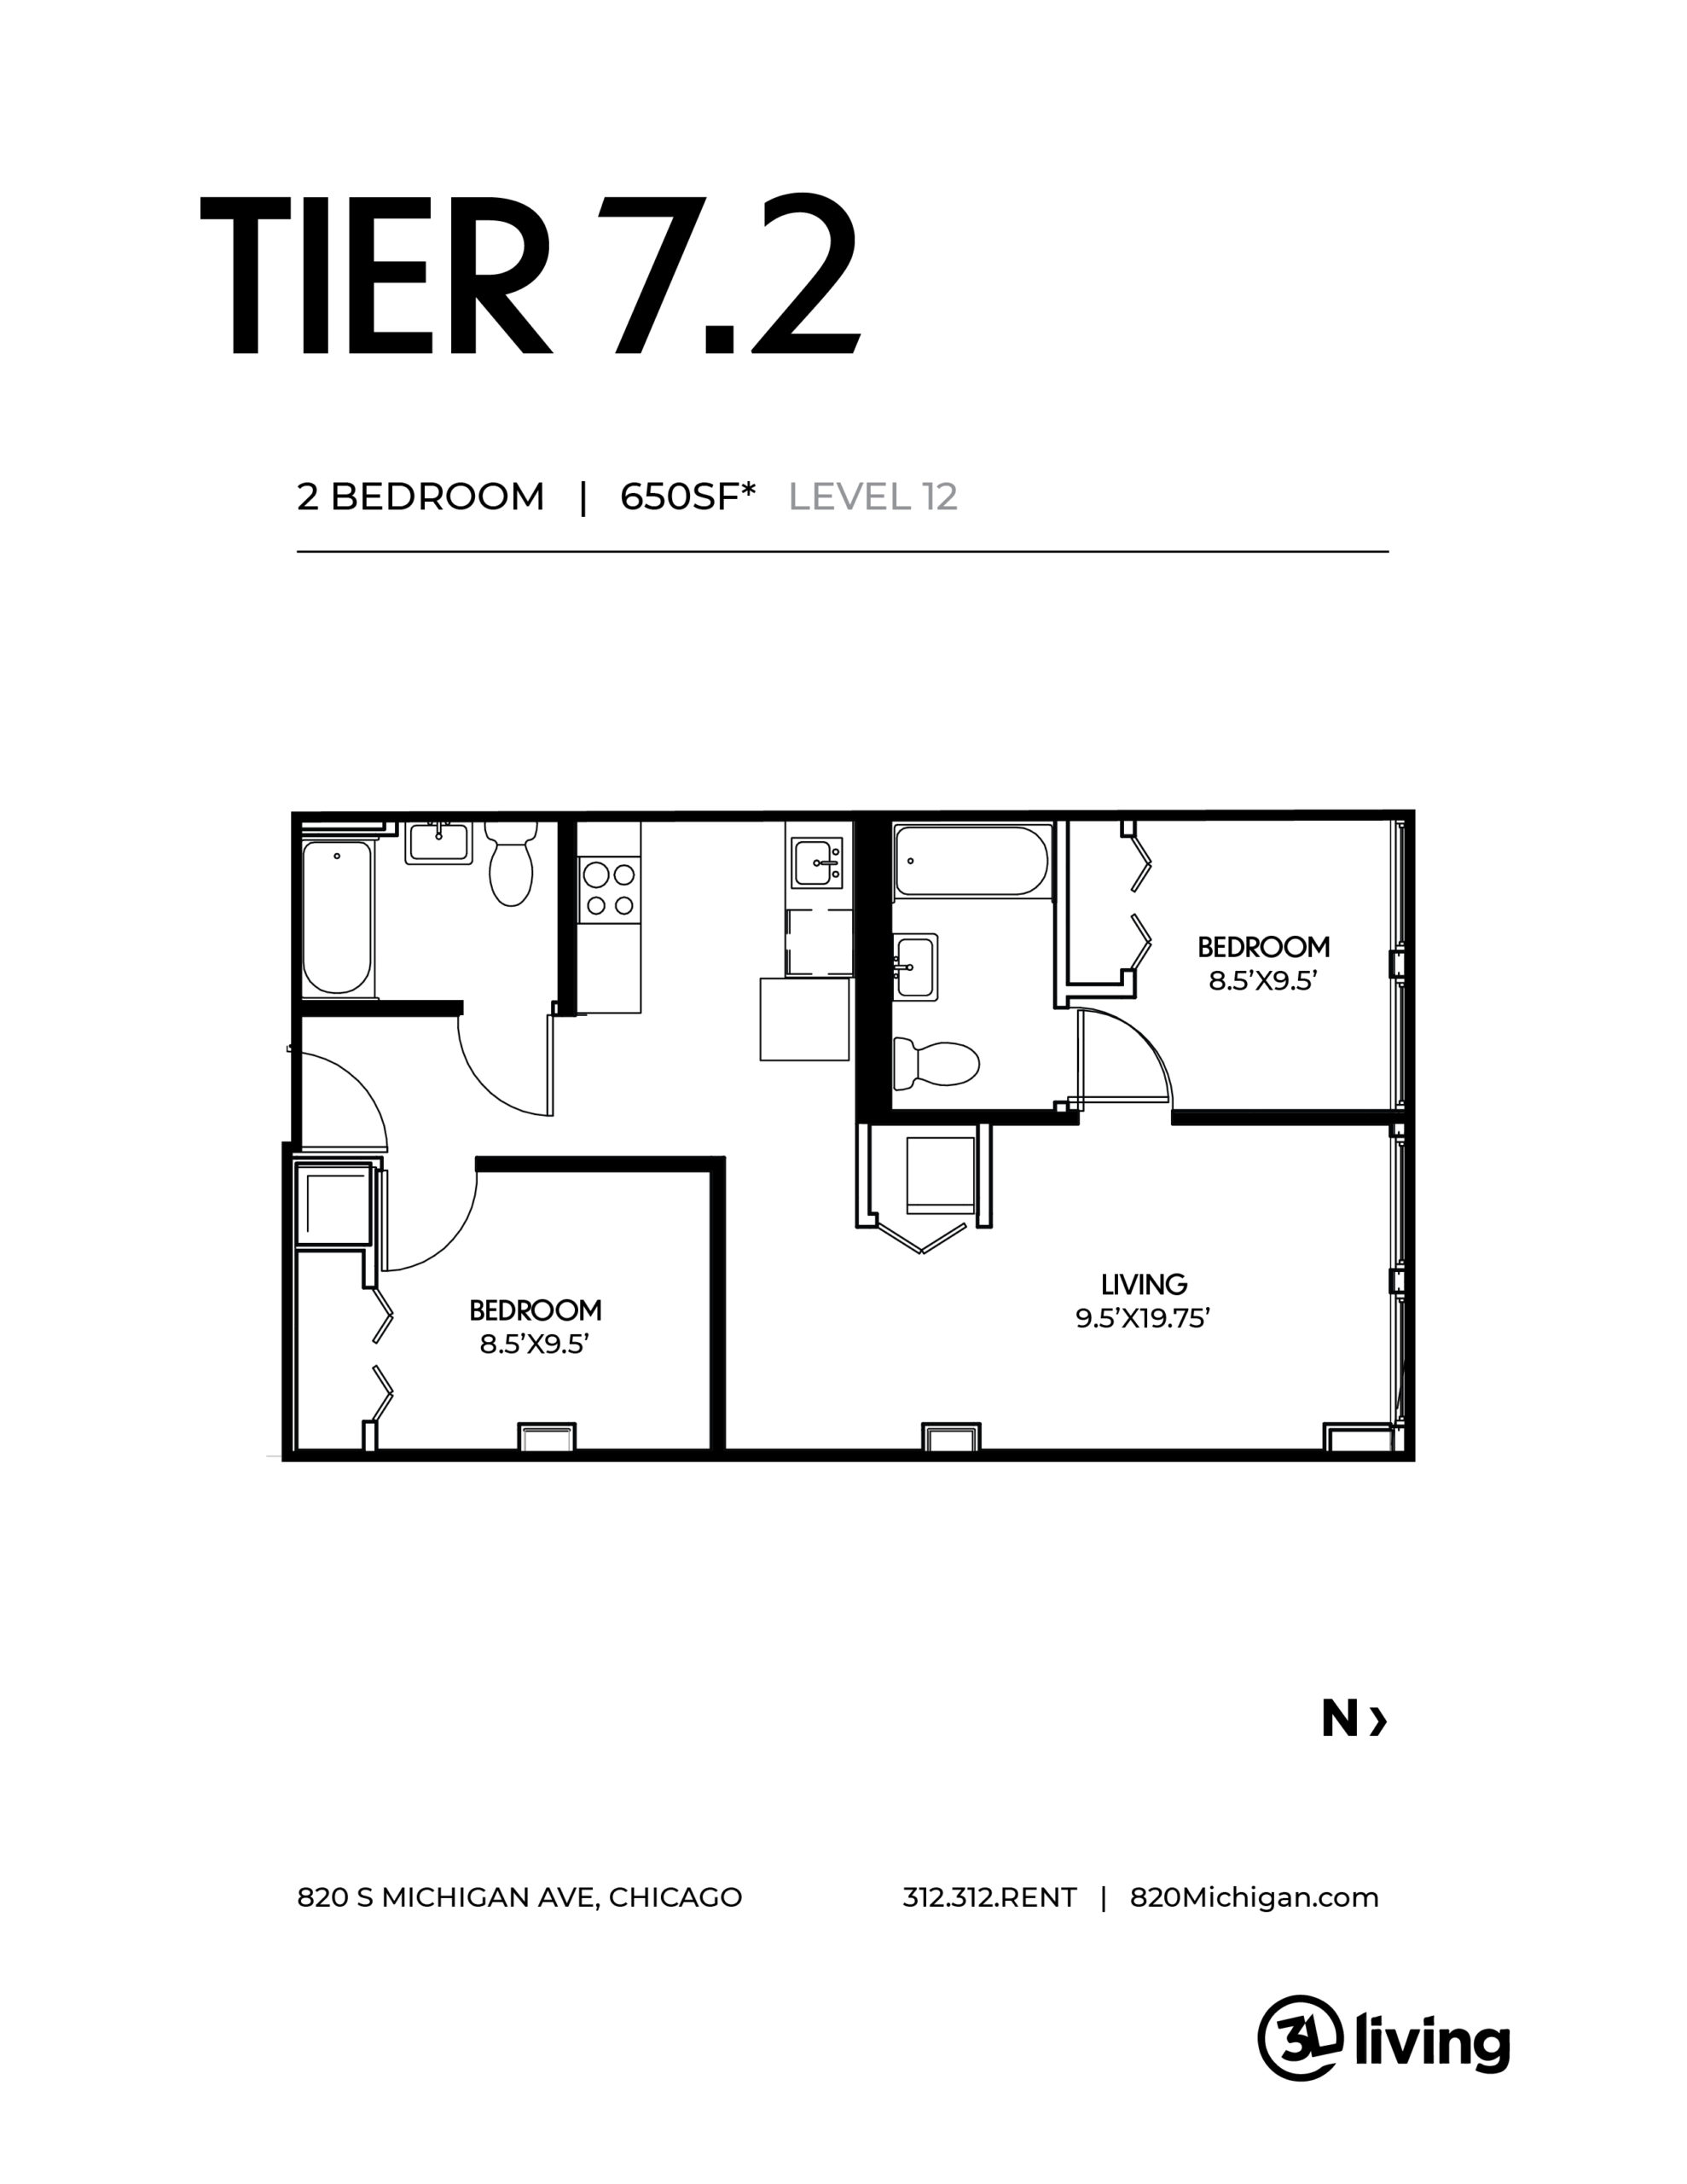 820SM-Floorplans-Measurements-R3-7.2